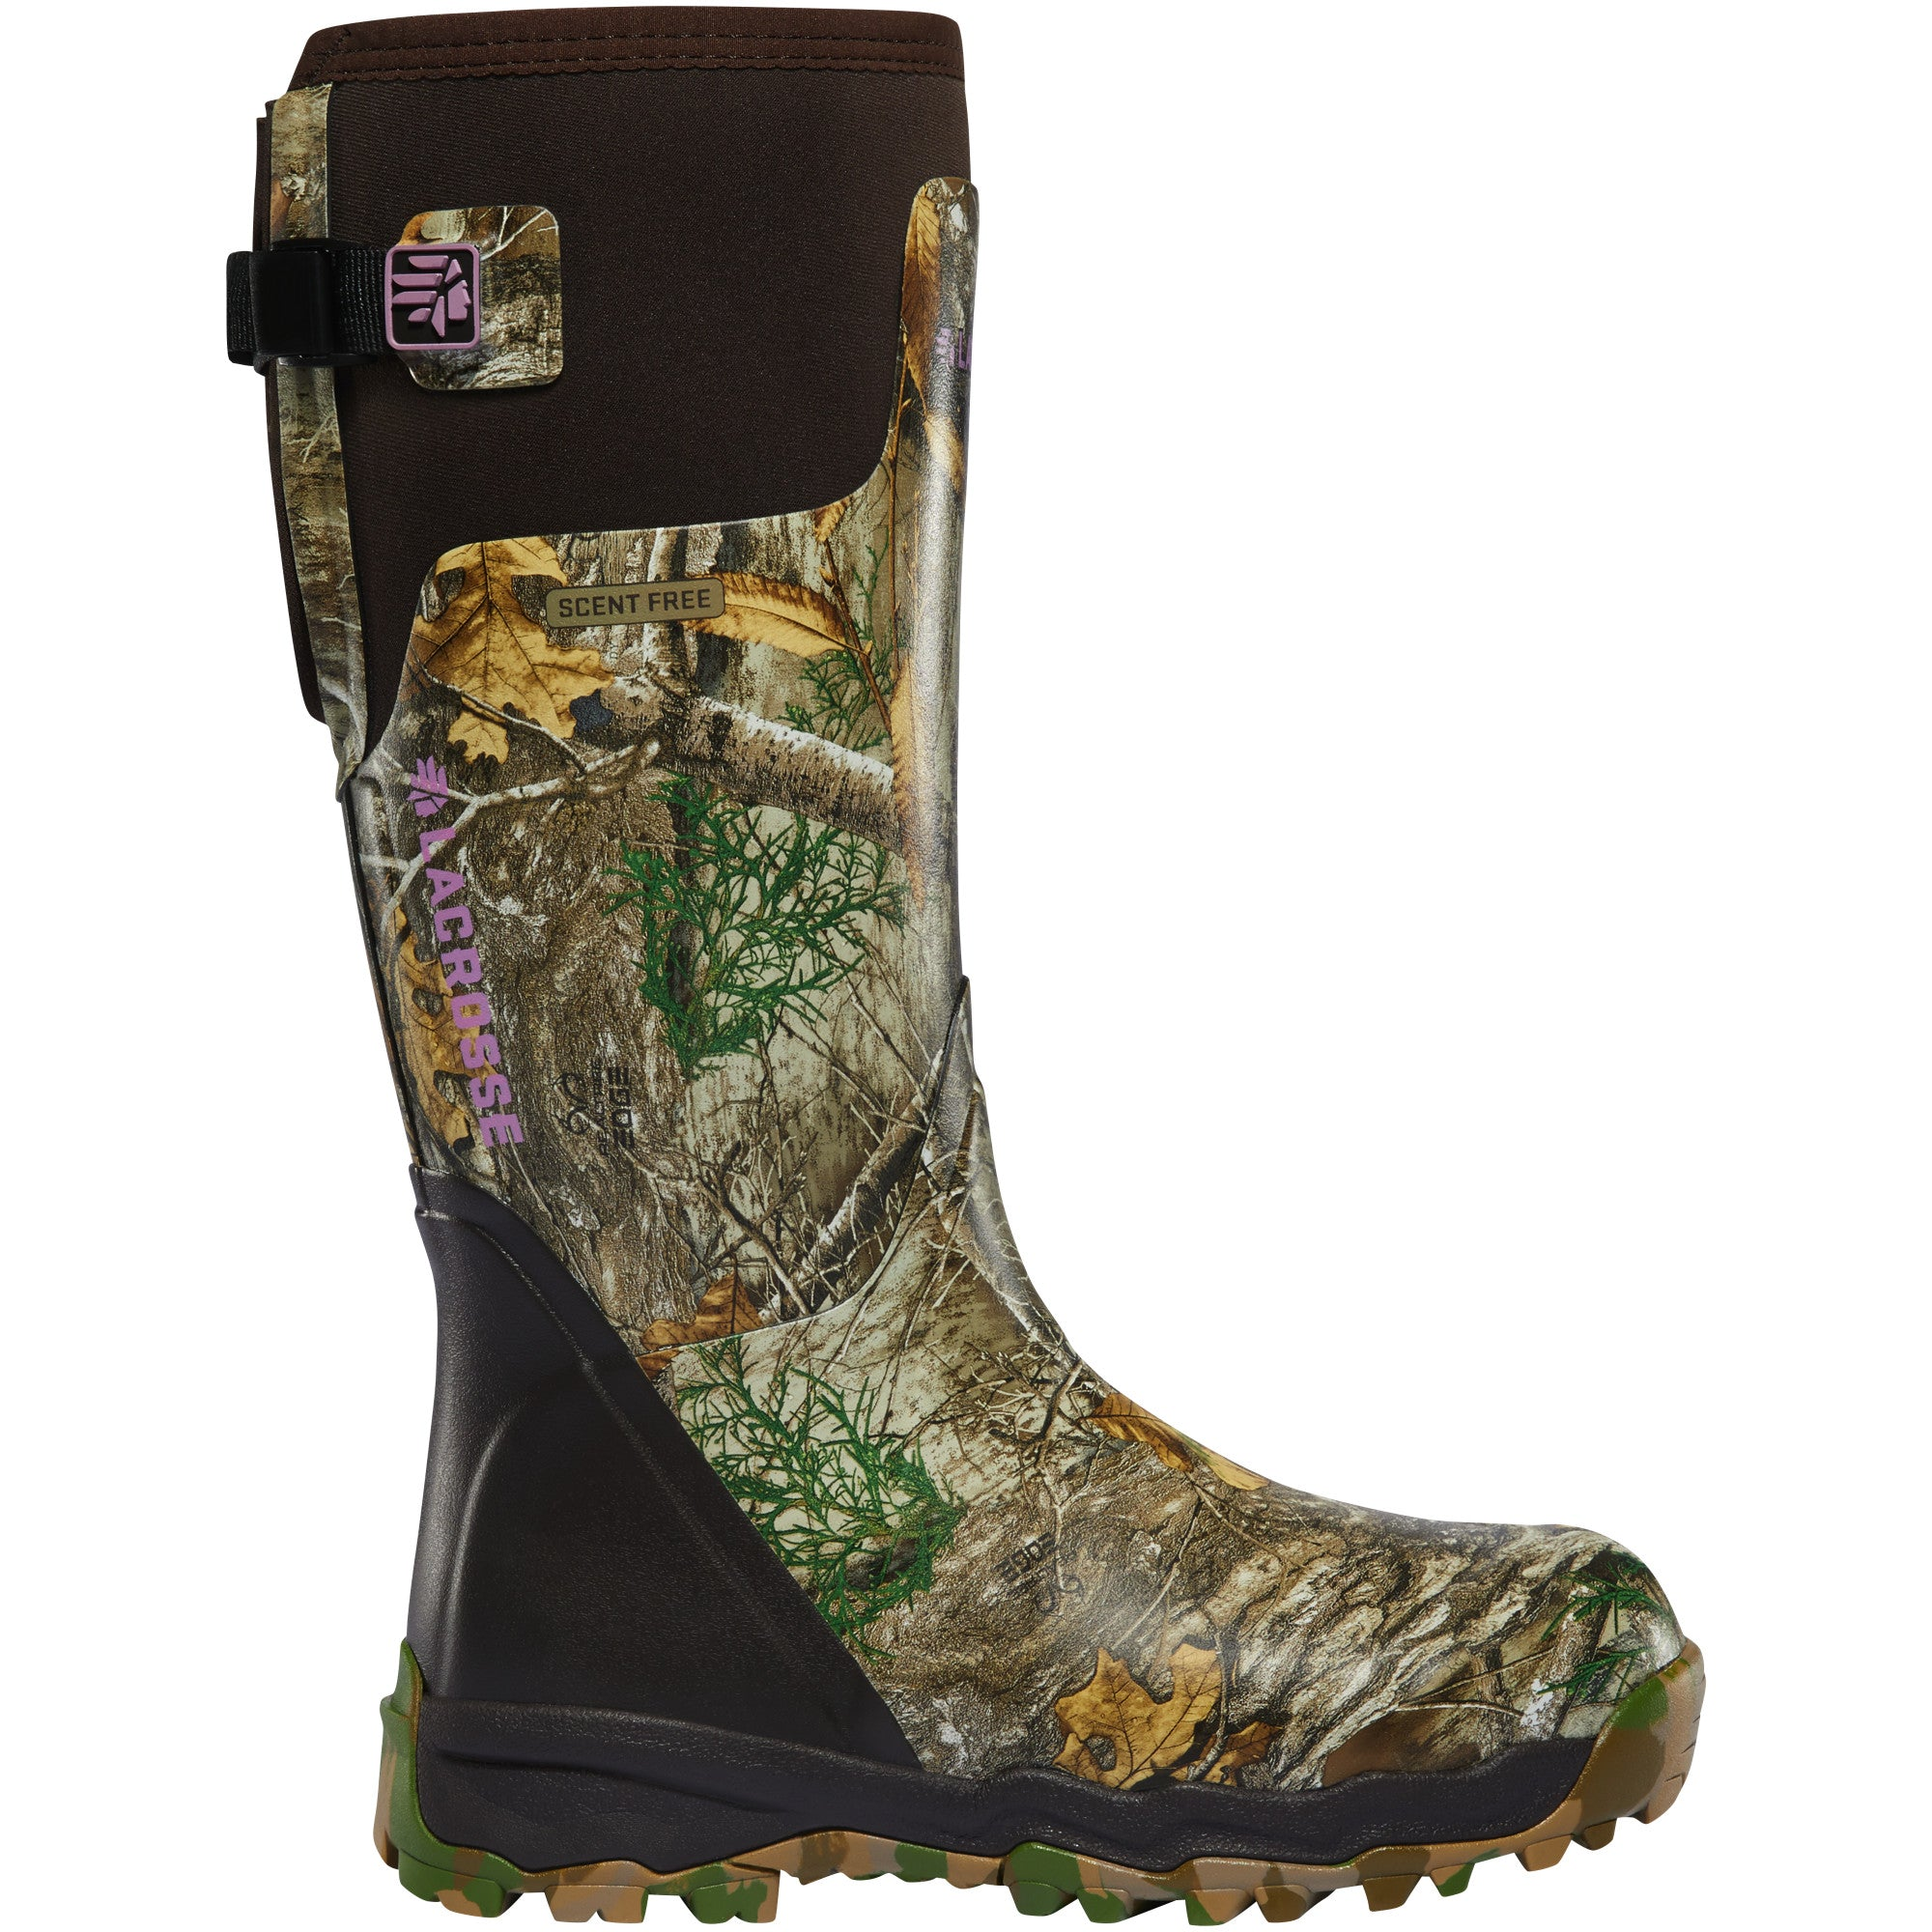 "LaCrosse Women's Alphaburly Pro 15"" Waterproof Hunting Boot in Realtree Edge from the side"